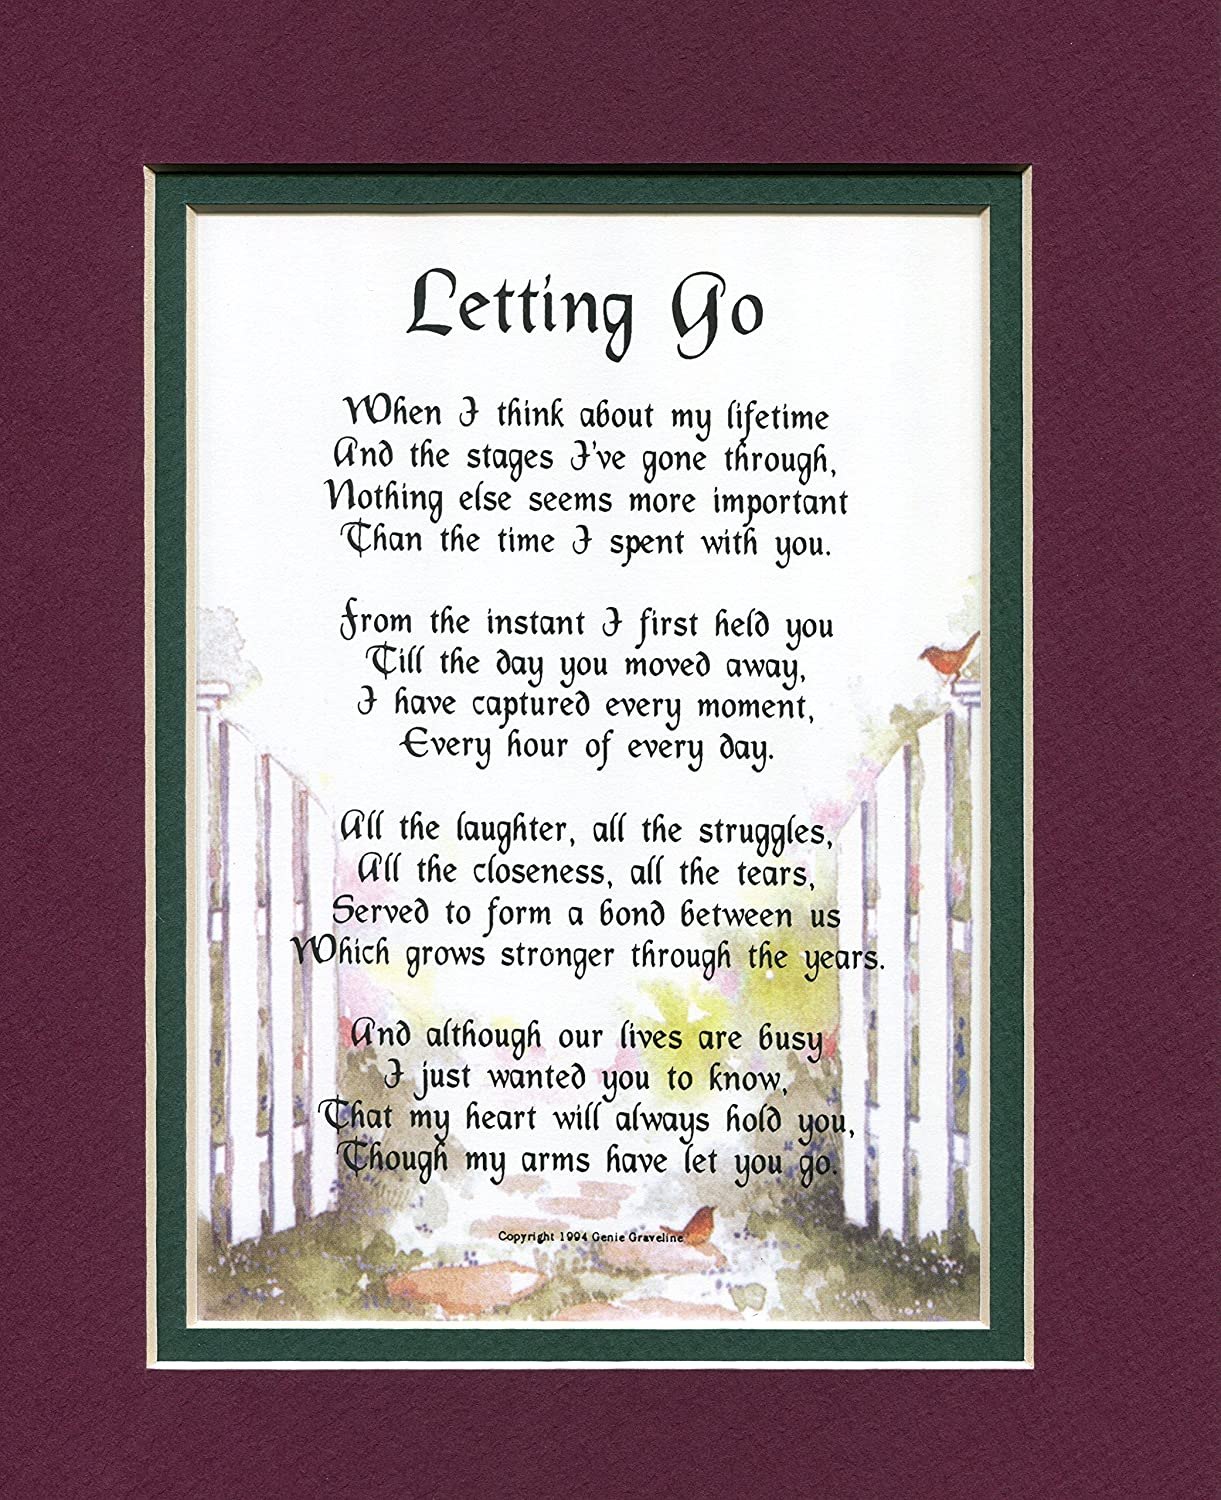 A Gift For A Son Or Daughter, # 60B, Touching 8×10 Poem, Double-matted In Burgundy/Dark Green And Enhanced With Watercolor Graphics. – Home Decor Gift Packages